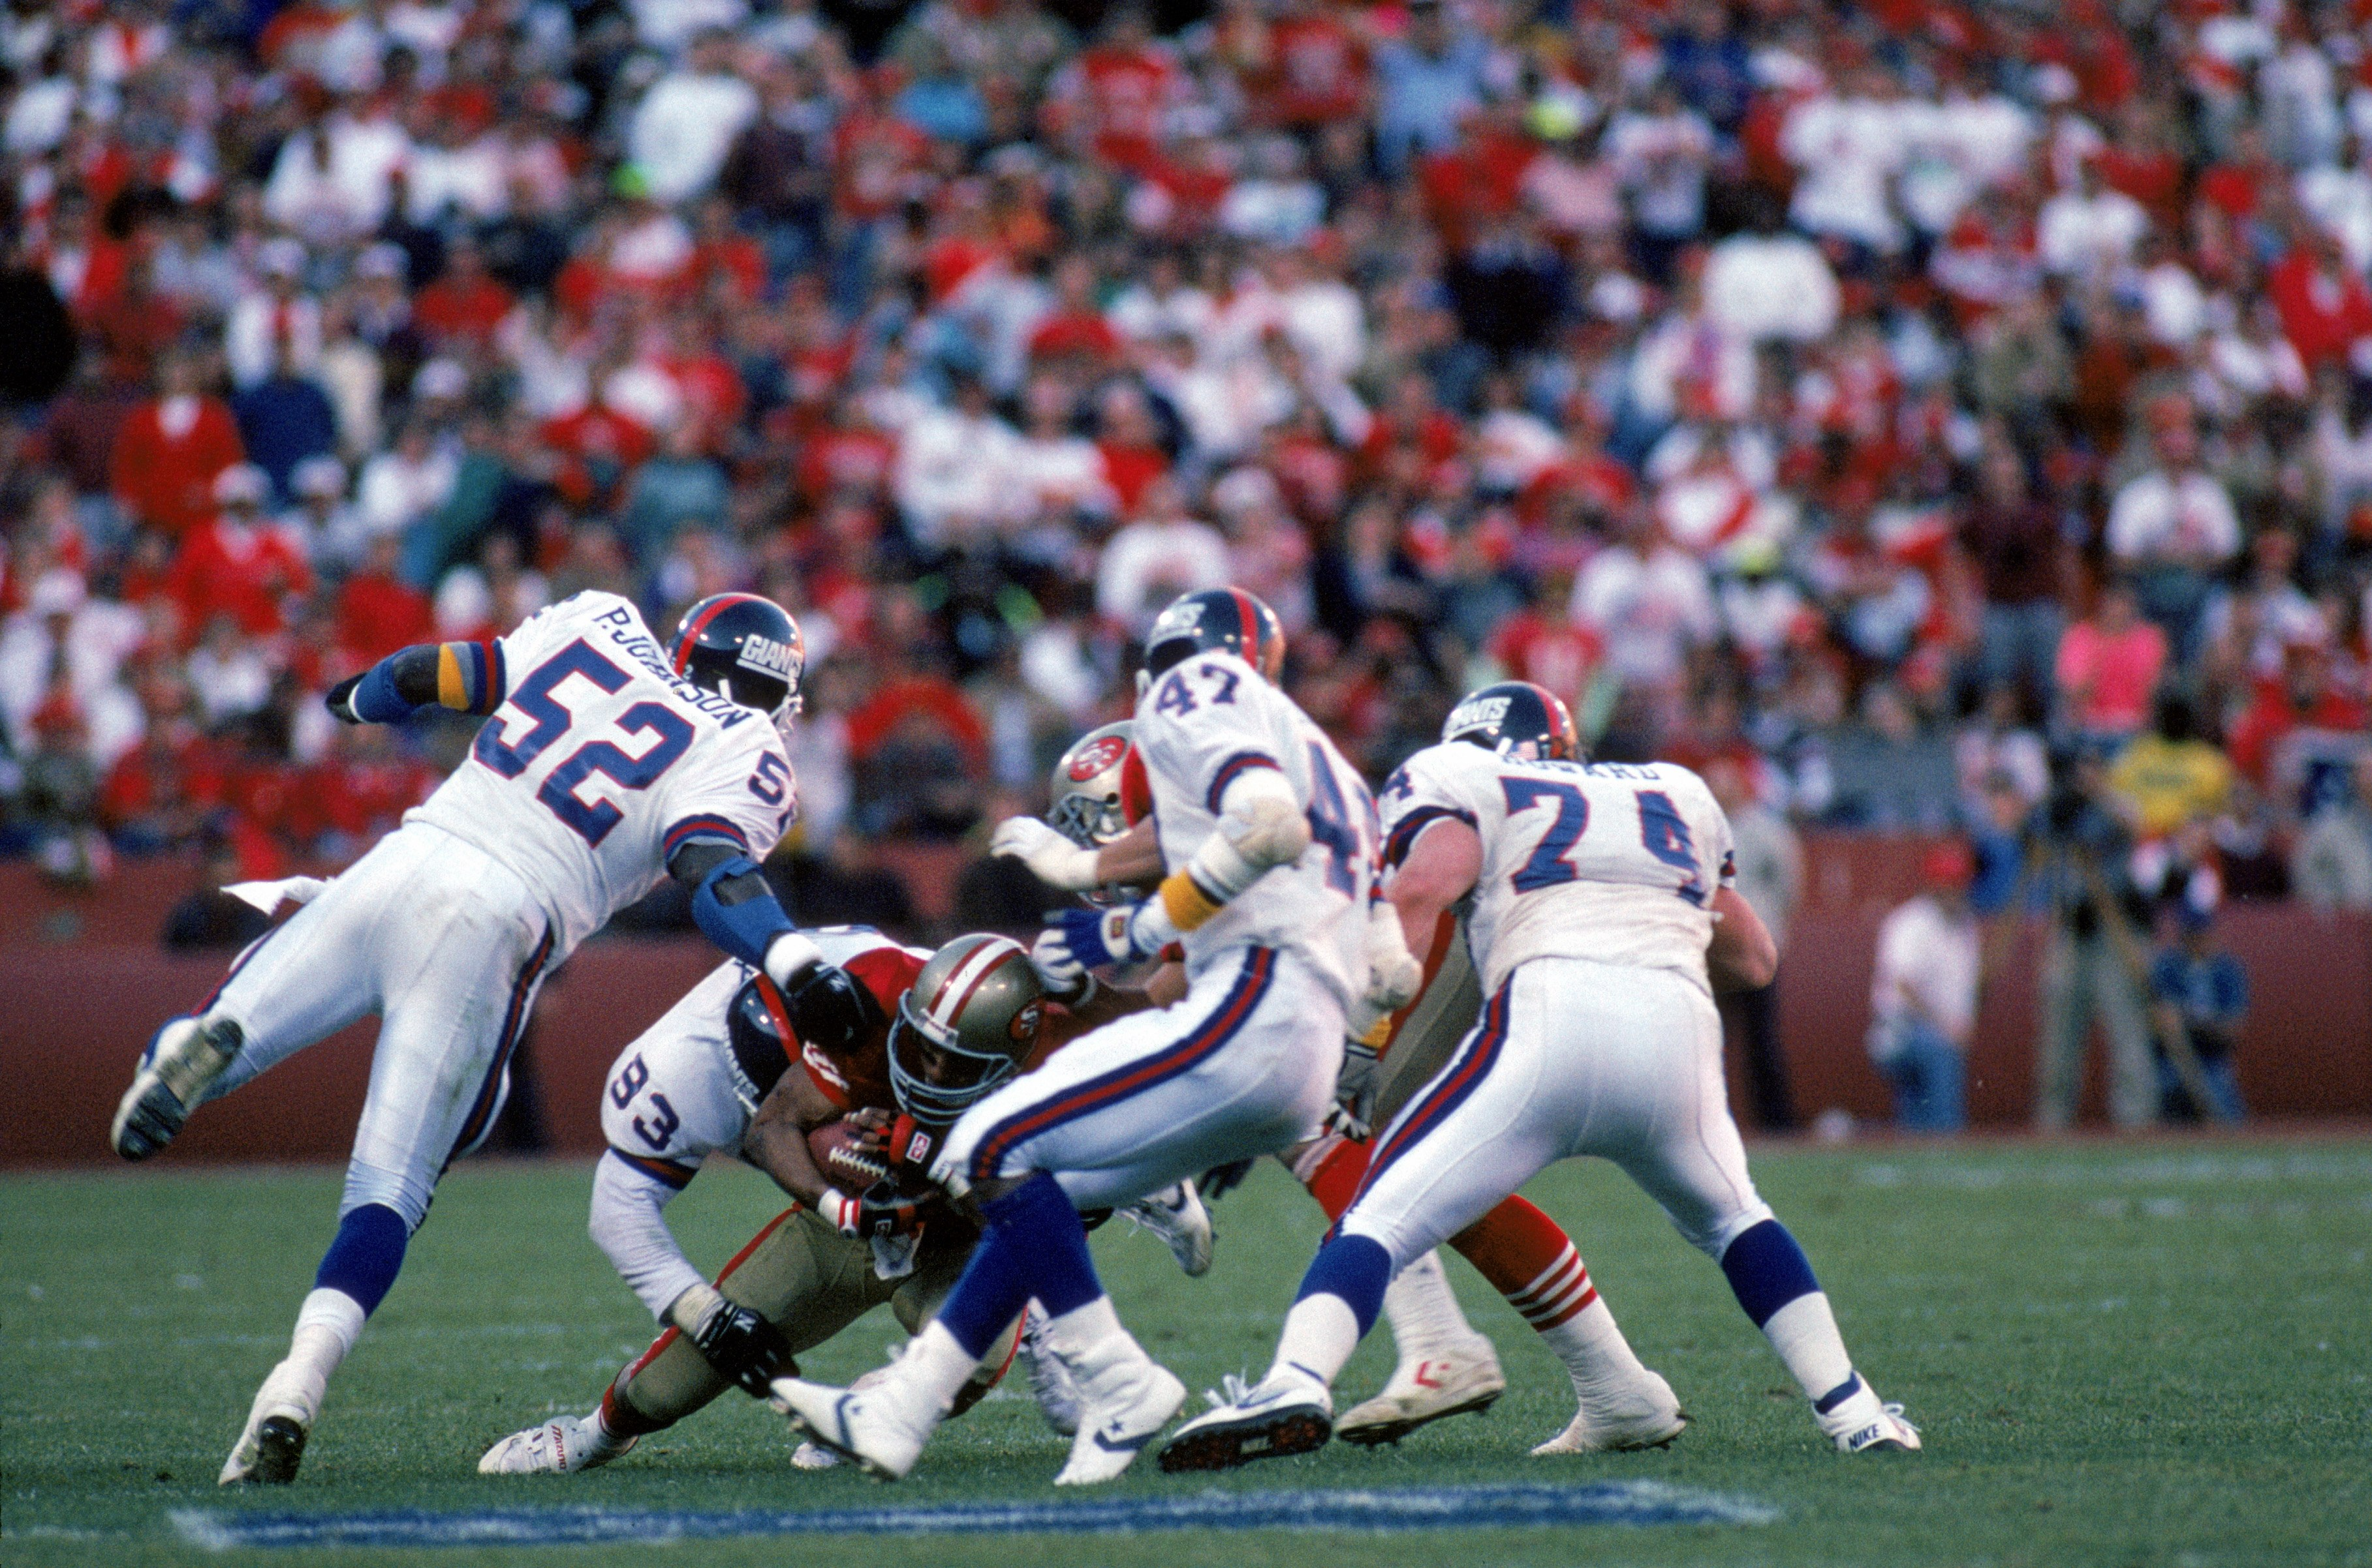 SAN FRANCISCO - JANUARY 20:  Linebacker Pepper Johnson #52, defensive end Mike Fox #93 and safety Greg Jackson #47 of the New York Giants team up to tackle San Francisco 49ers running back Roger Craig #33 during the 1990 NFC Championship Game at Candlesti